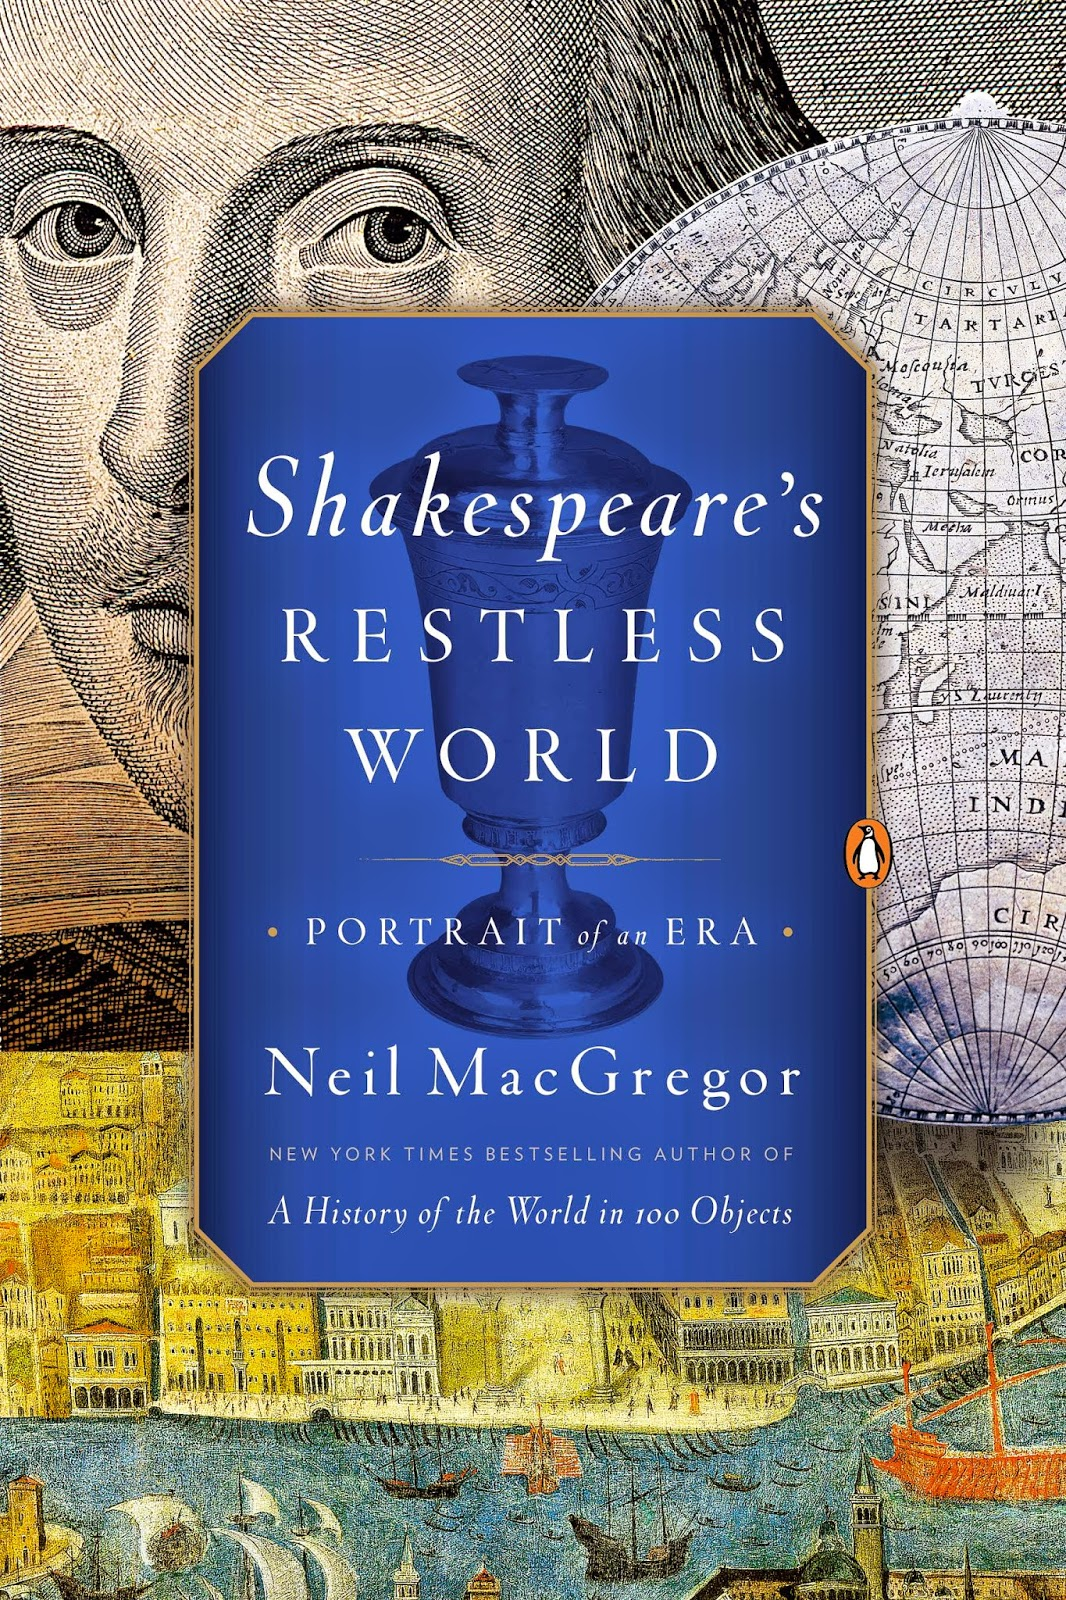 shakespeare solved neil macgregor s shakespeare s restless world it is one of the very best books i have ever regarding shakespeare s life and plays it does a wonderful job of transporting us backwards in time to